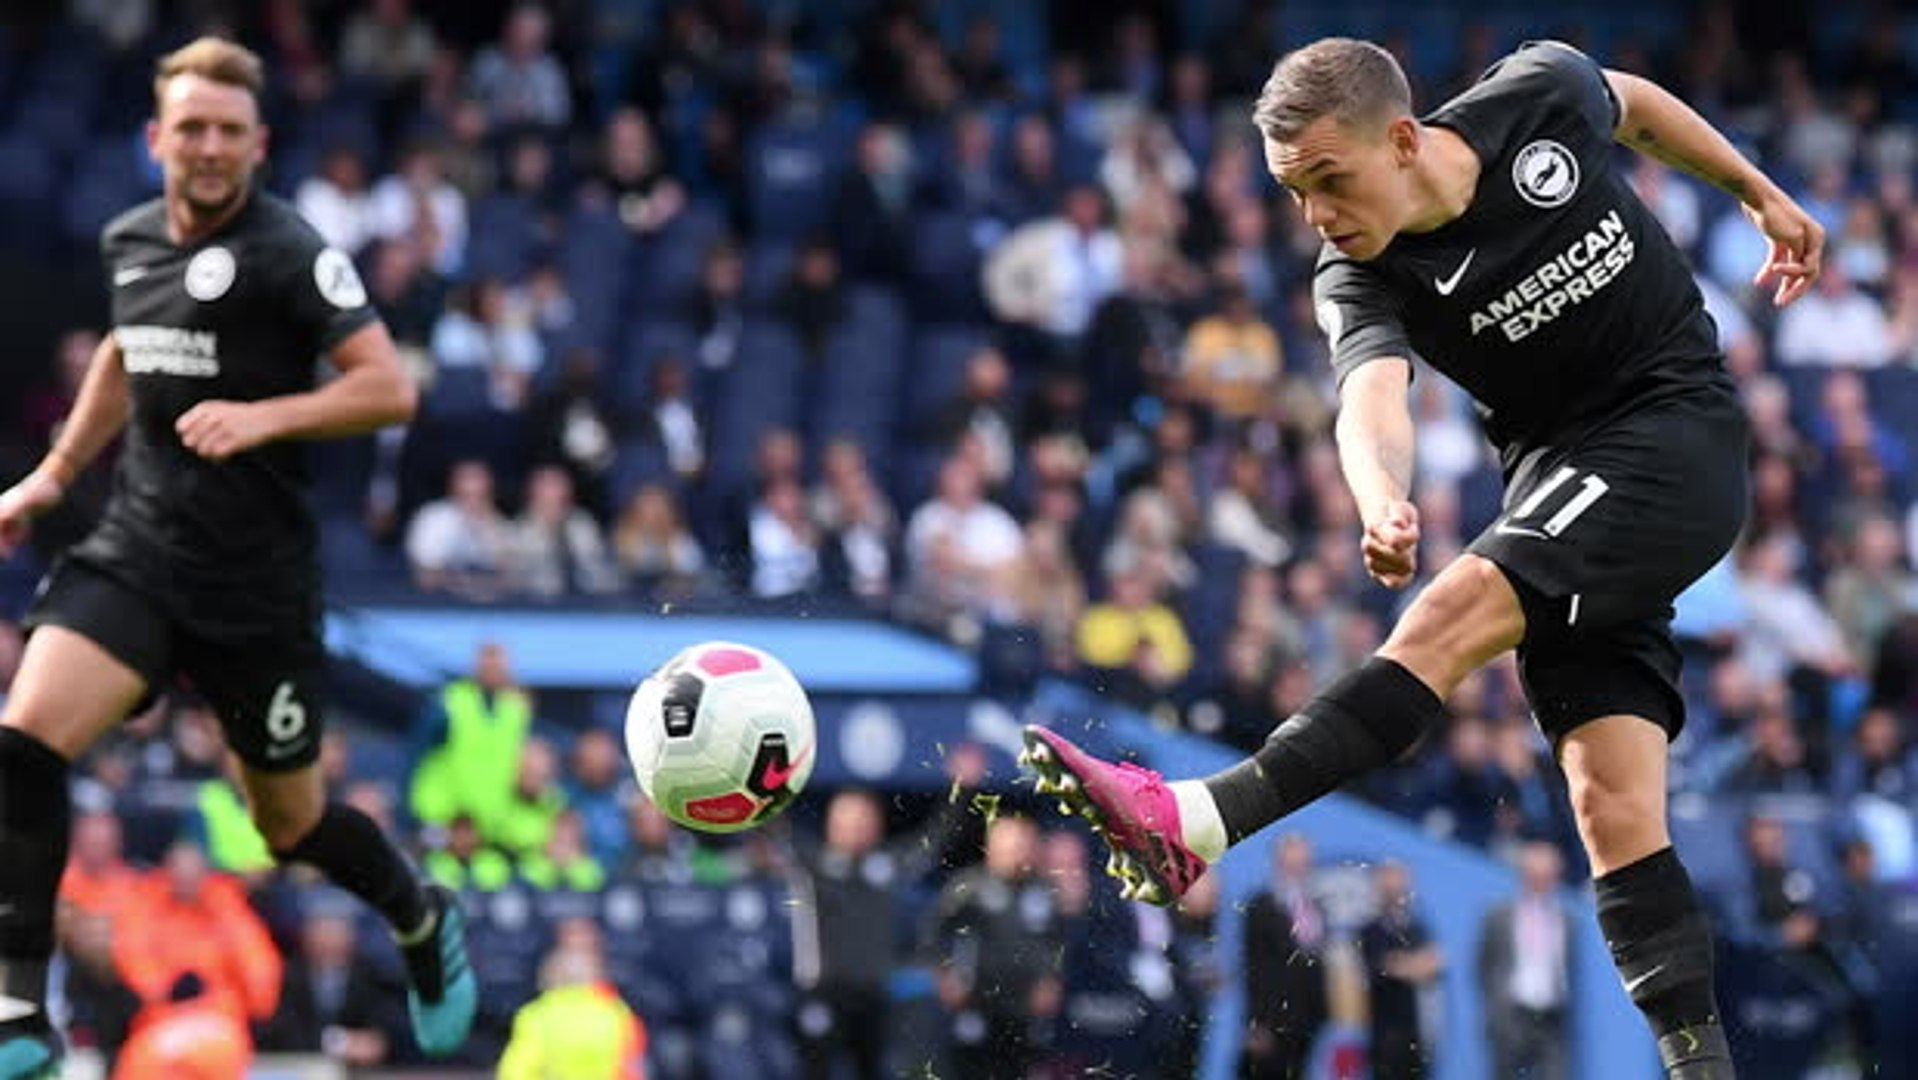 Brighton's courage praised by both managers